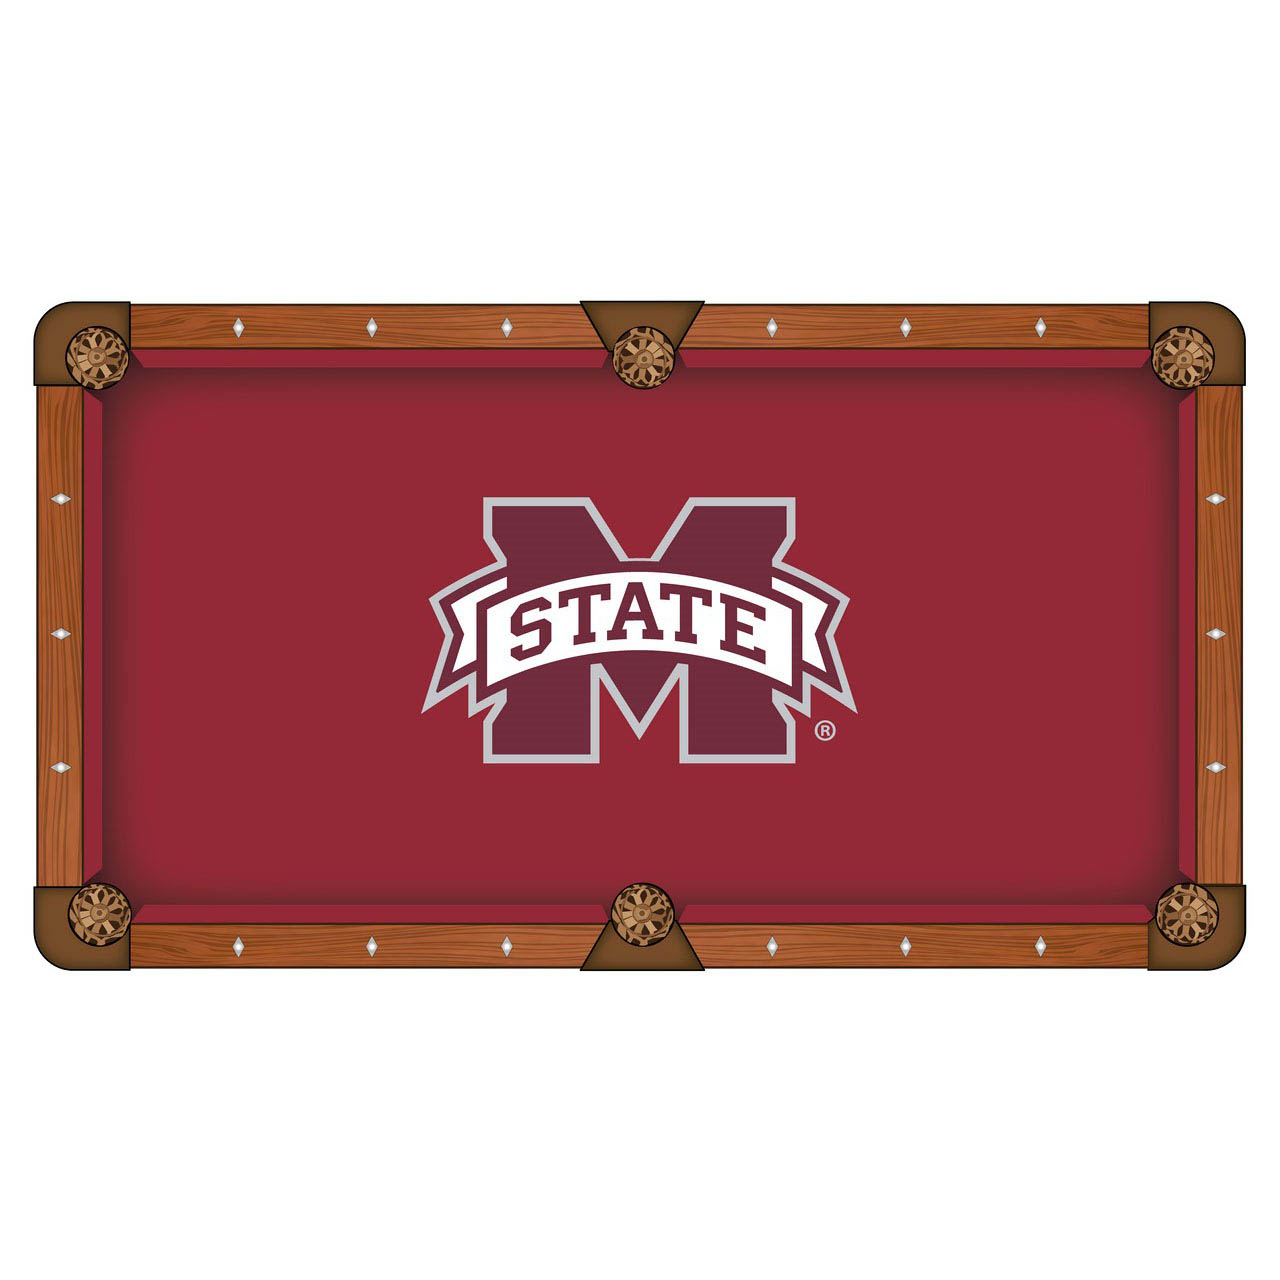 Exquisite Mississippi State University Pool Table Cloth Product Photo